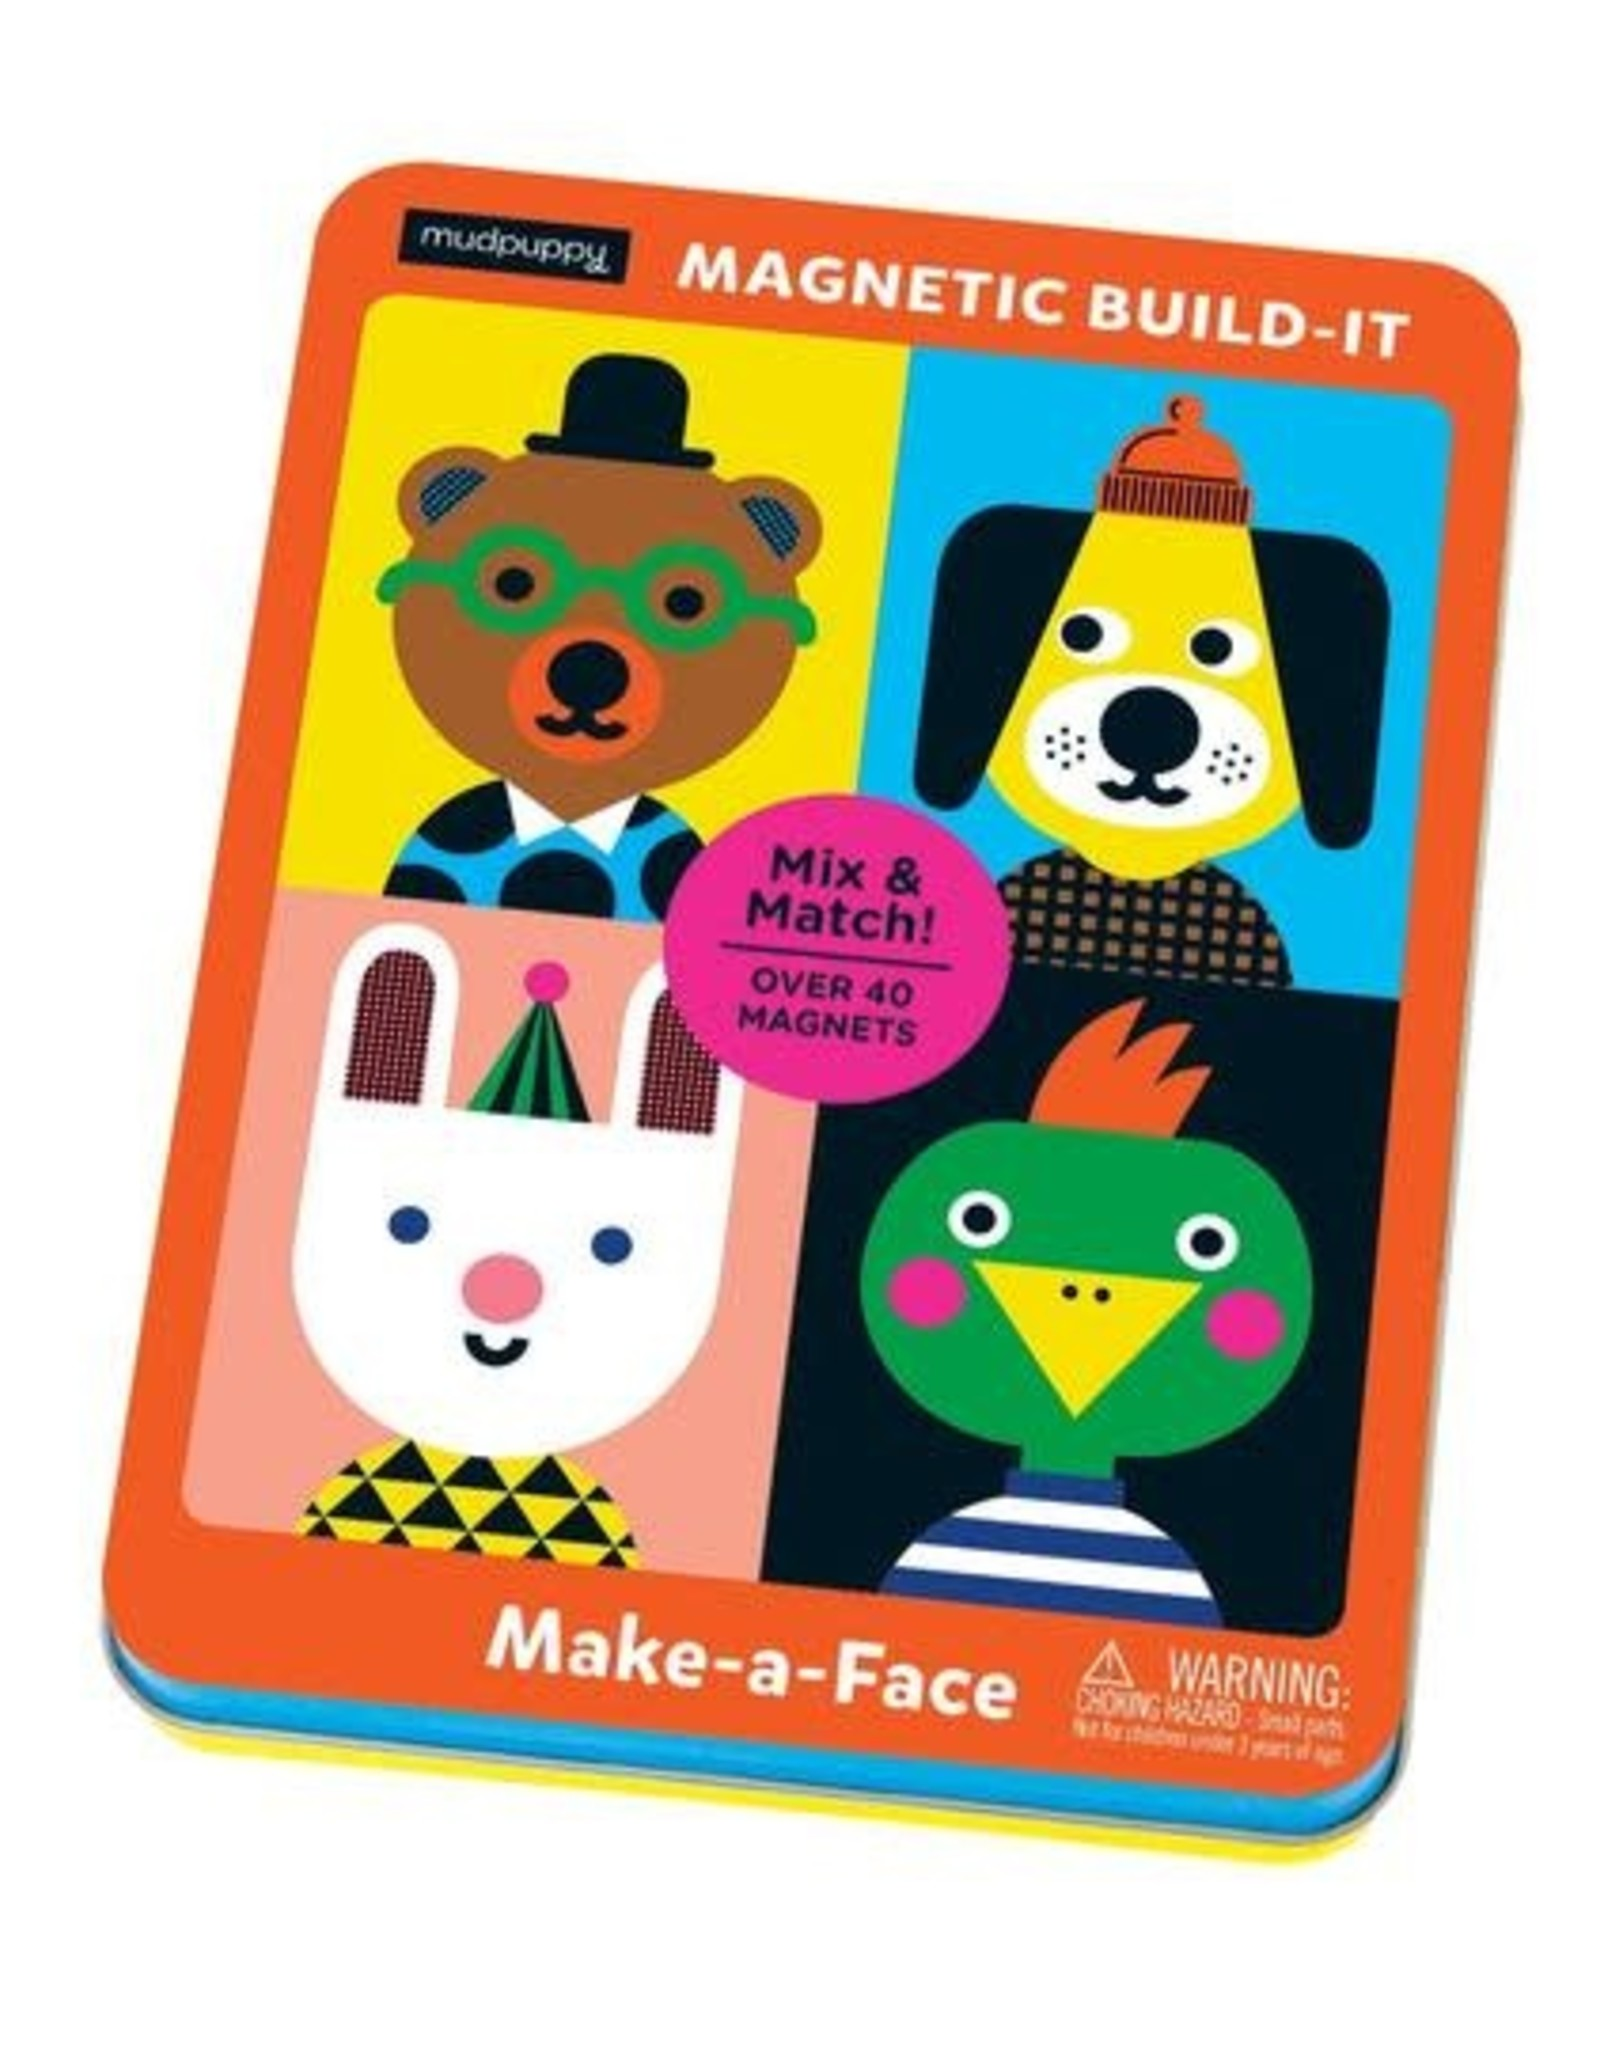 Mudpuppy Magnetic Build-It, Make-a-Face